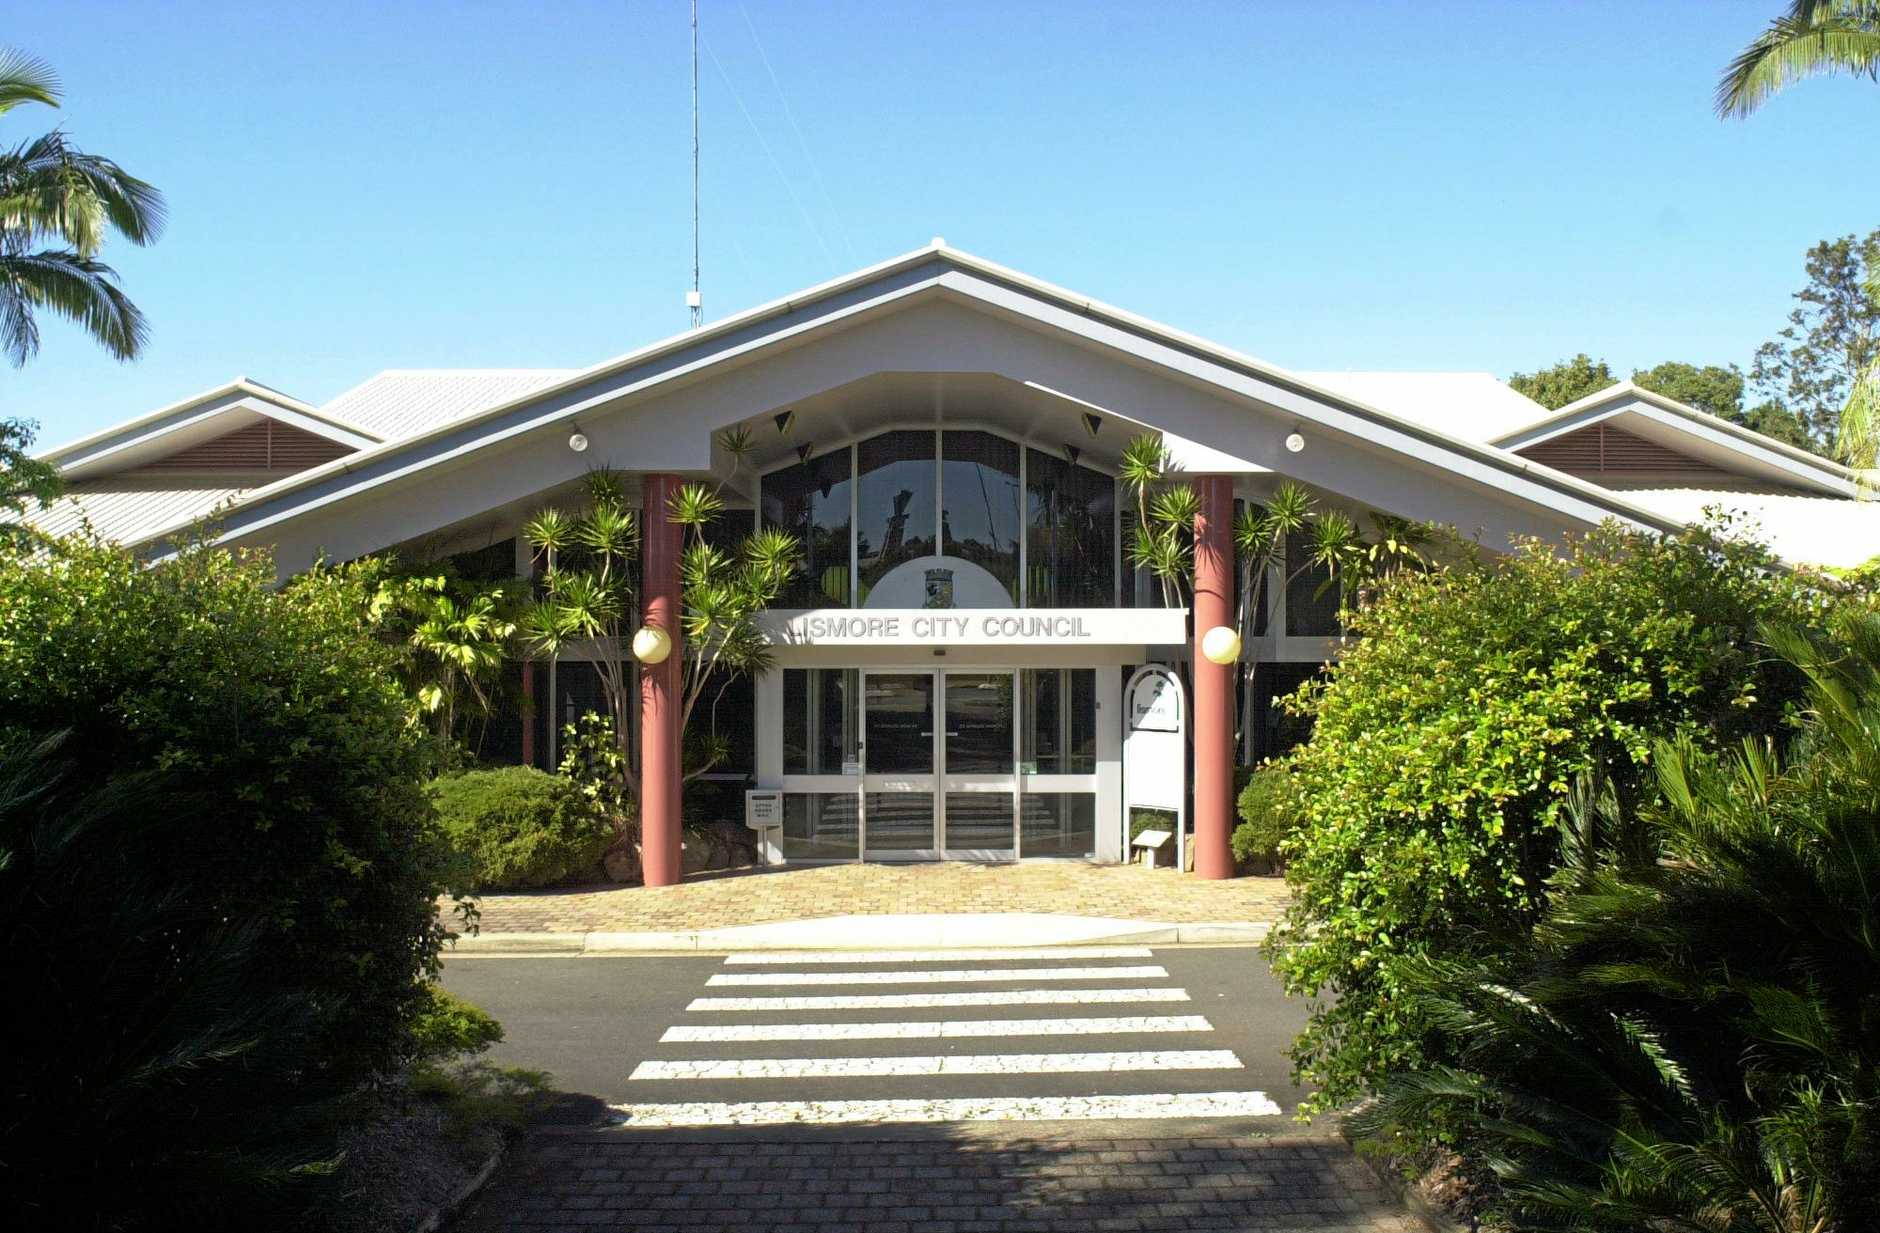 Lismore City Council Chambers. The Northern Star